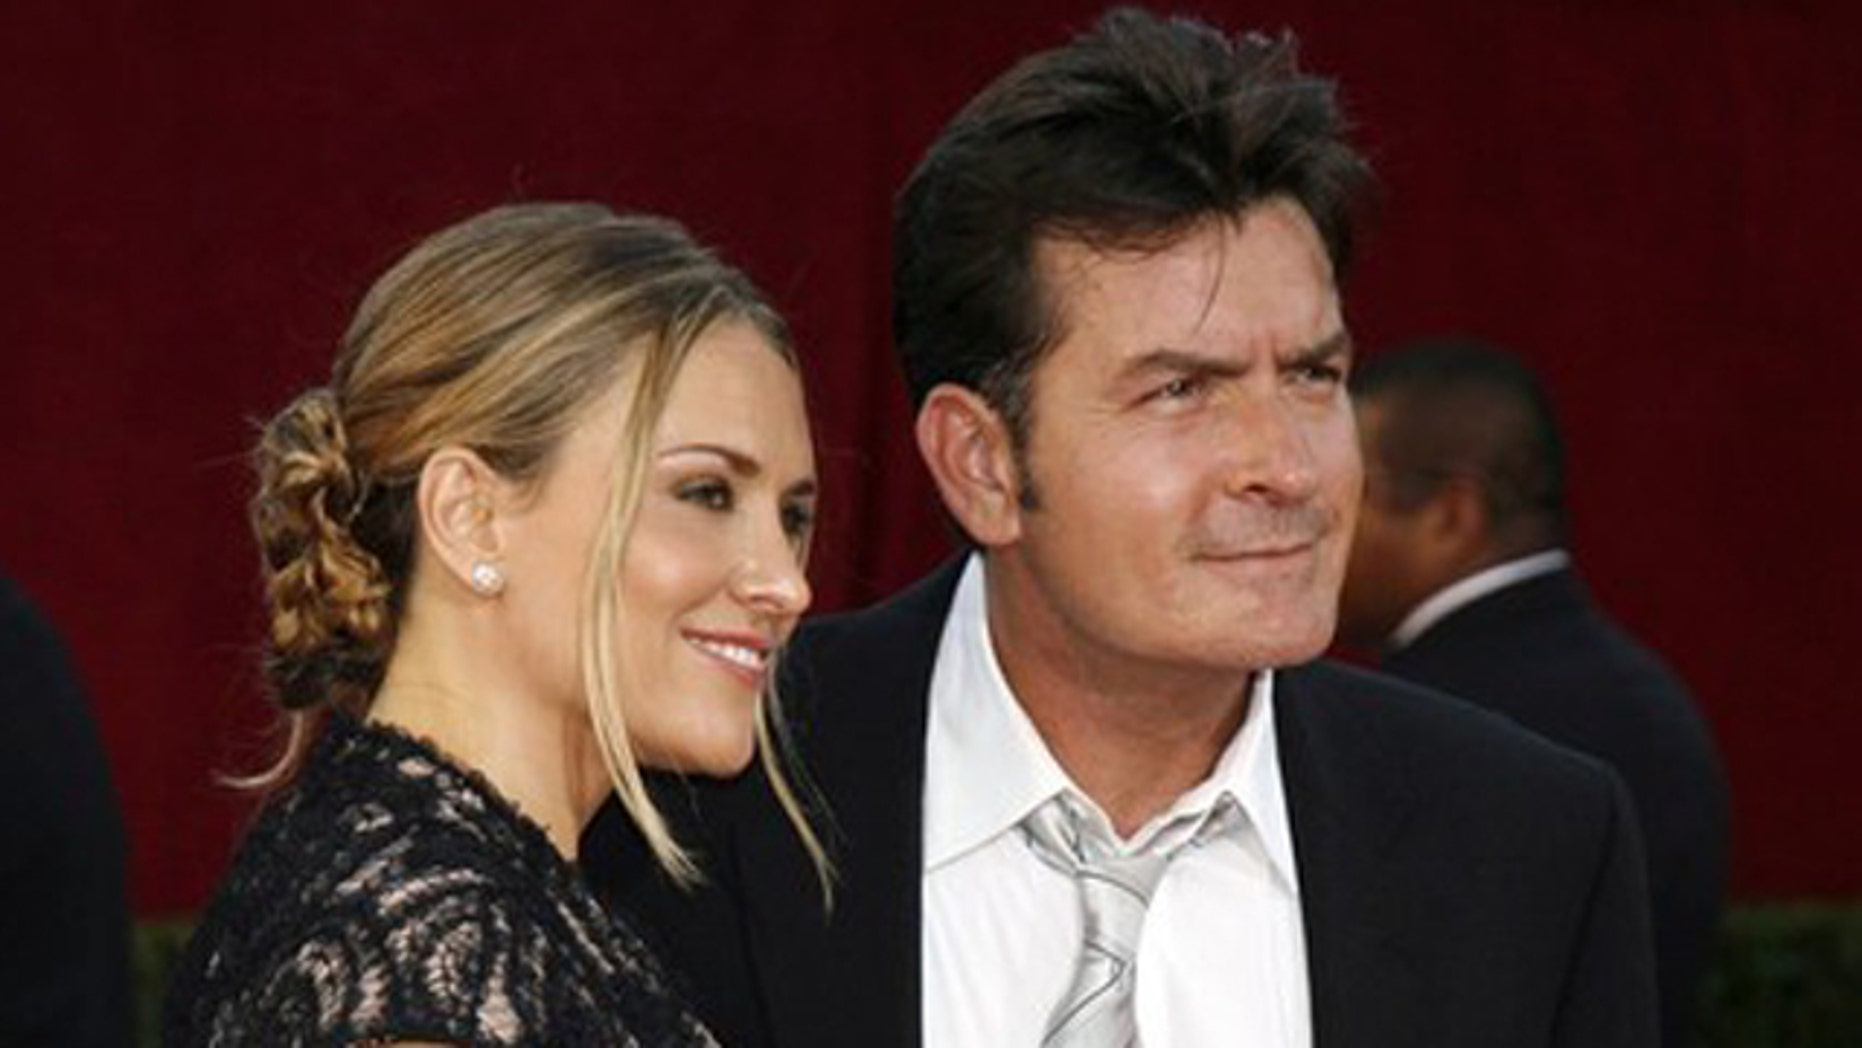 Actor Charlie Sheen and his wife Brooke Mueller arrive at the 61st annual Primetime Emmy Awards in Los Angeles, California in this September 20, 2009 file photo.